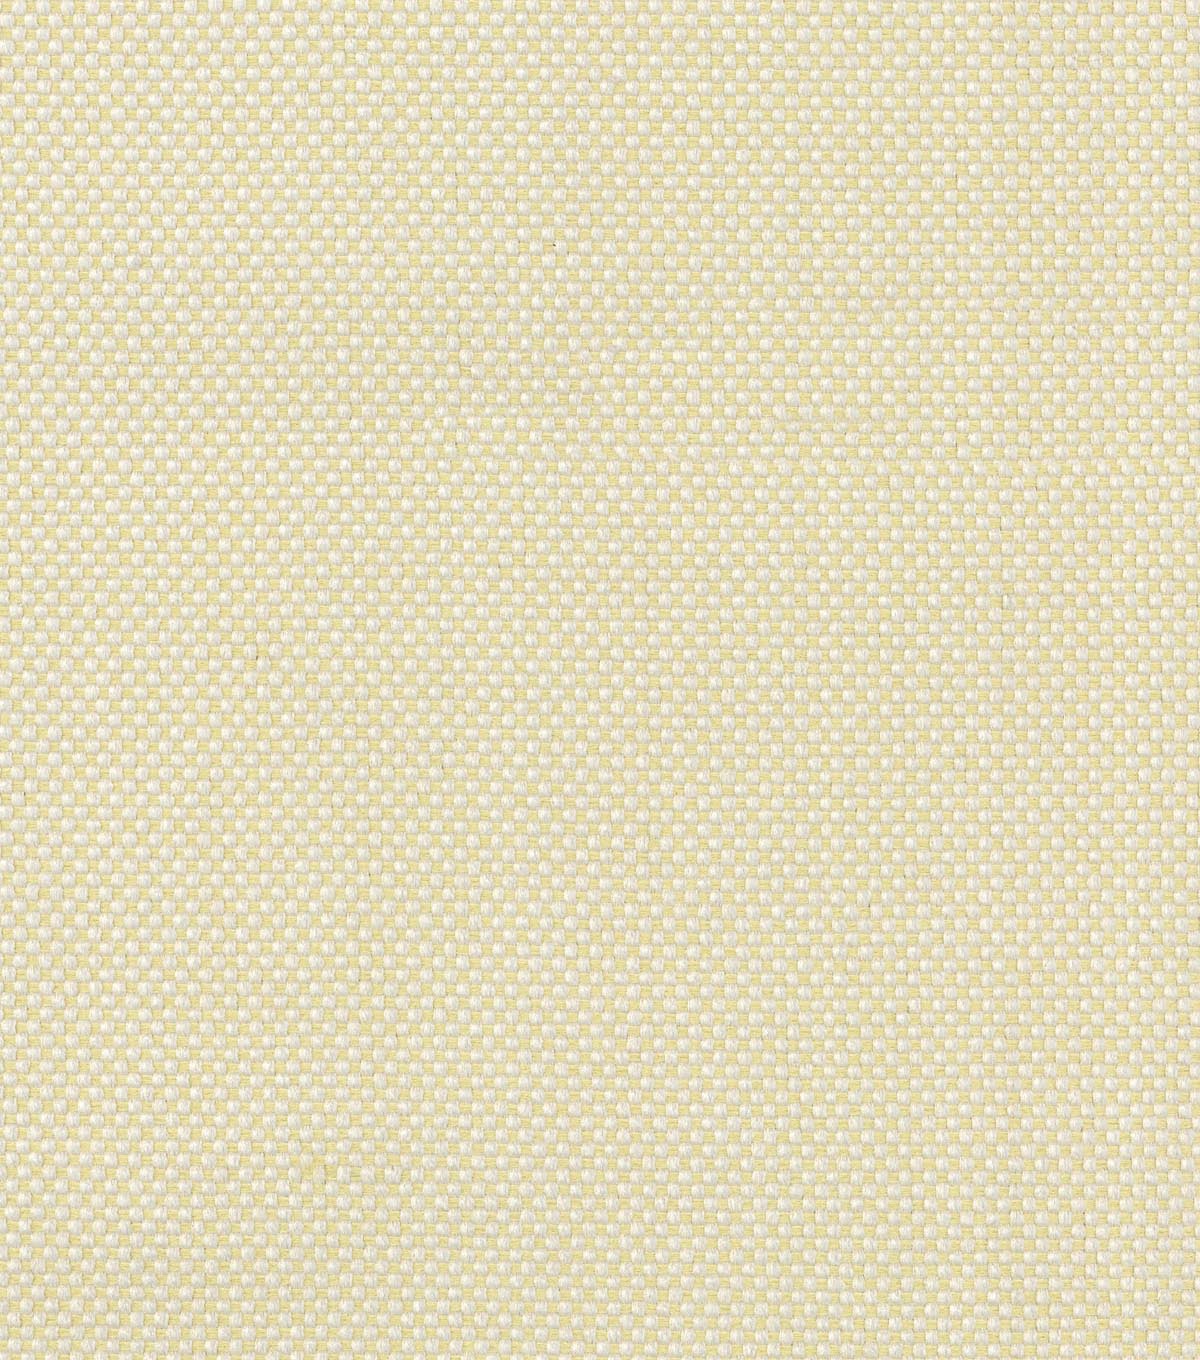 Home Decor 8\u0022x8\u0022 Swatch Fabric-Waverly SoHo Solid Bamboo